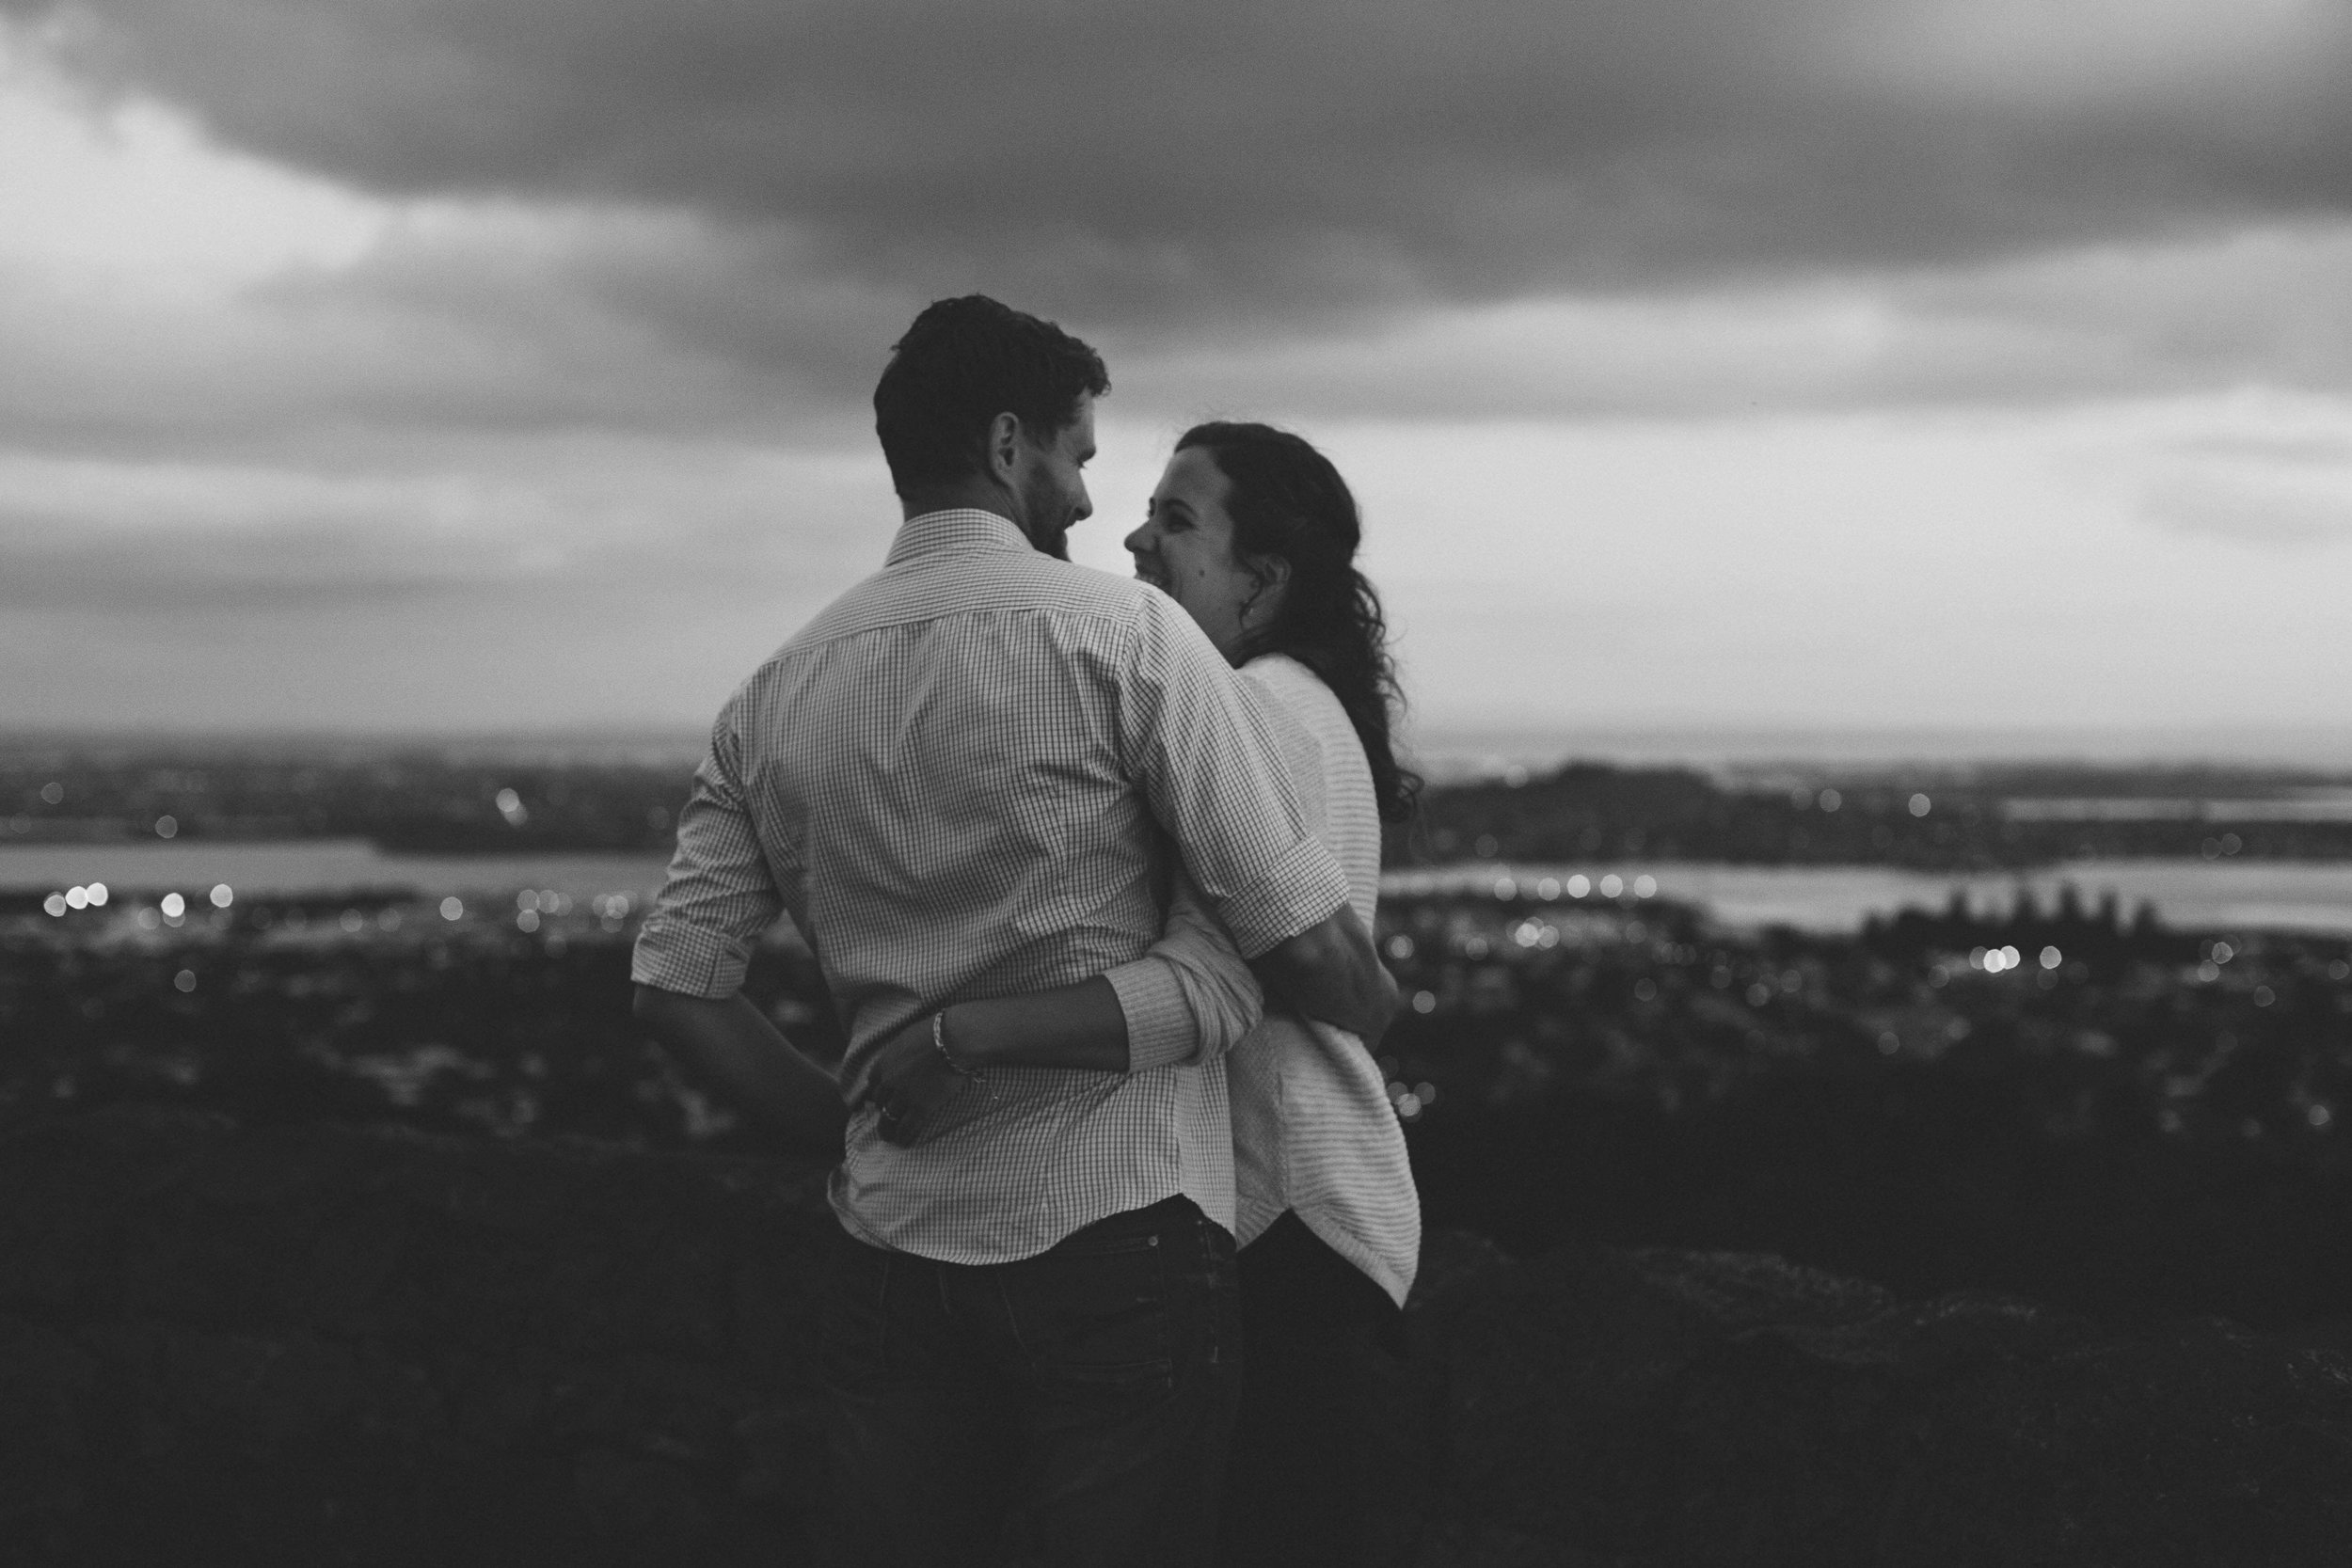 engagement-photoshoot-above-the-city-lights.jpg